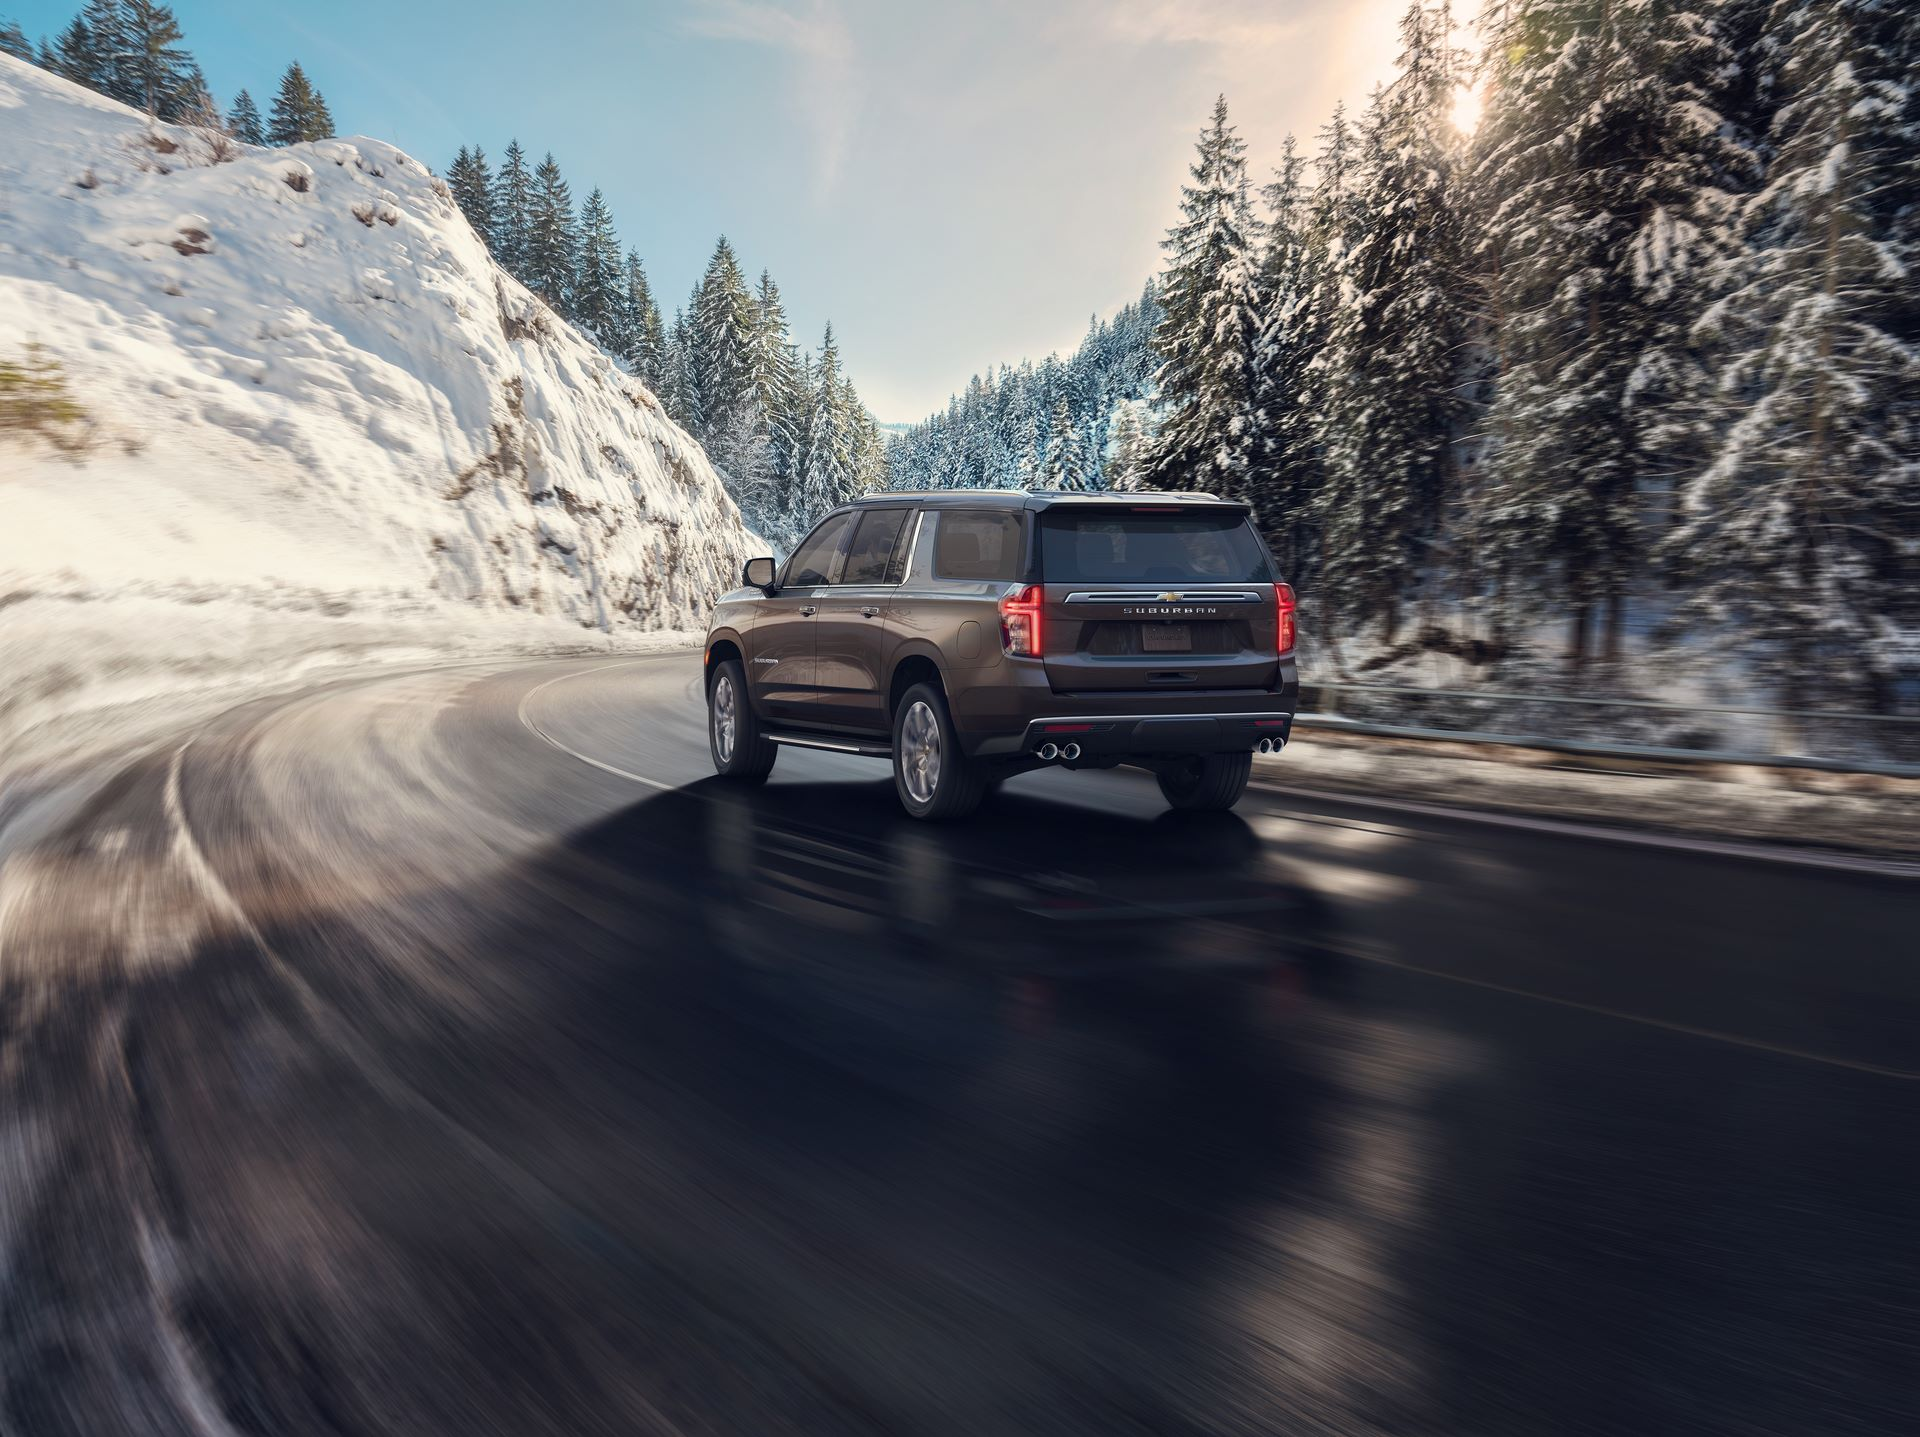 2021-Chevrolet-Suburban-HighCountry-002